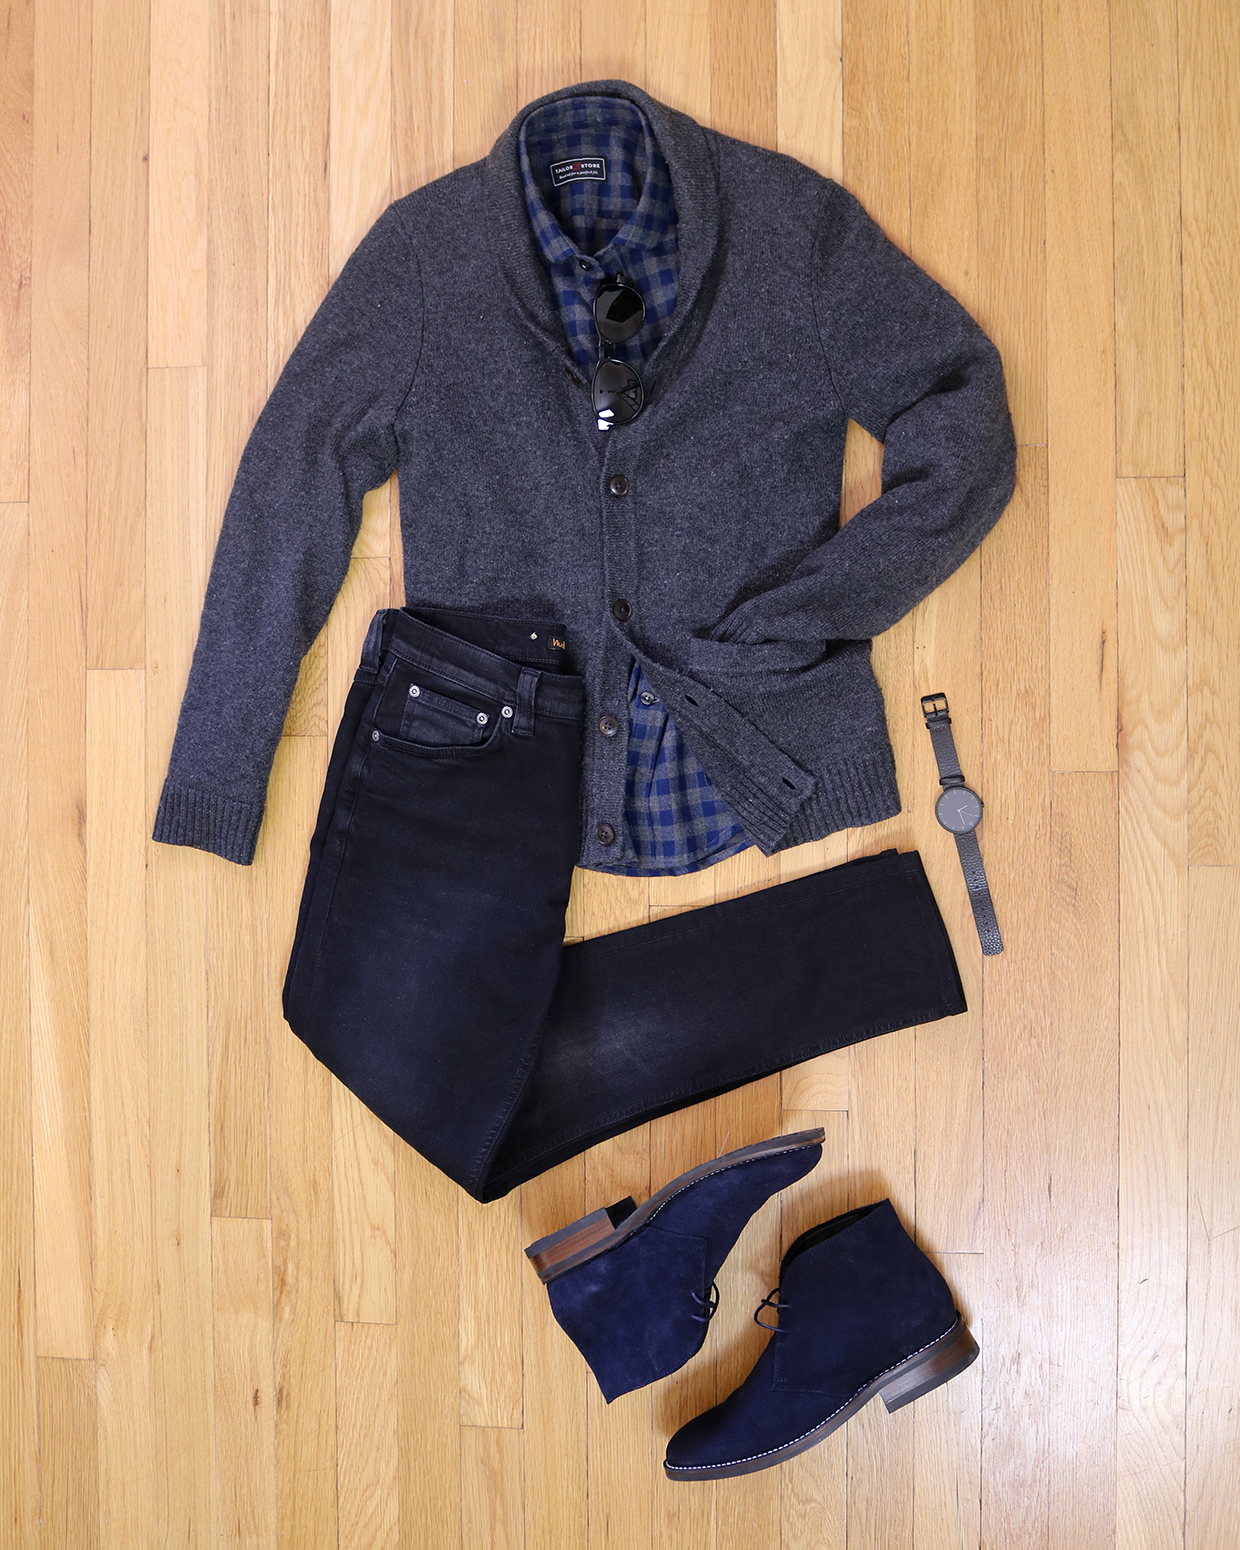 Navy Desert Boots with Jeans Outfit Grid